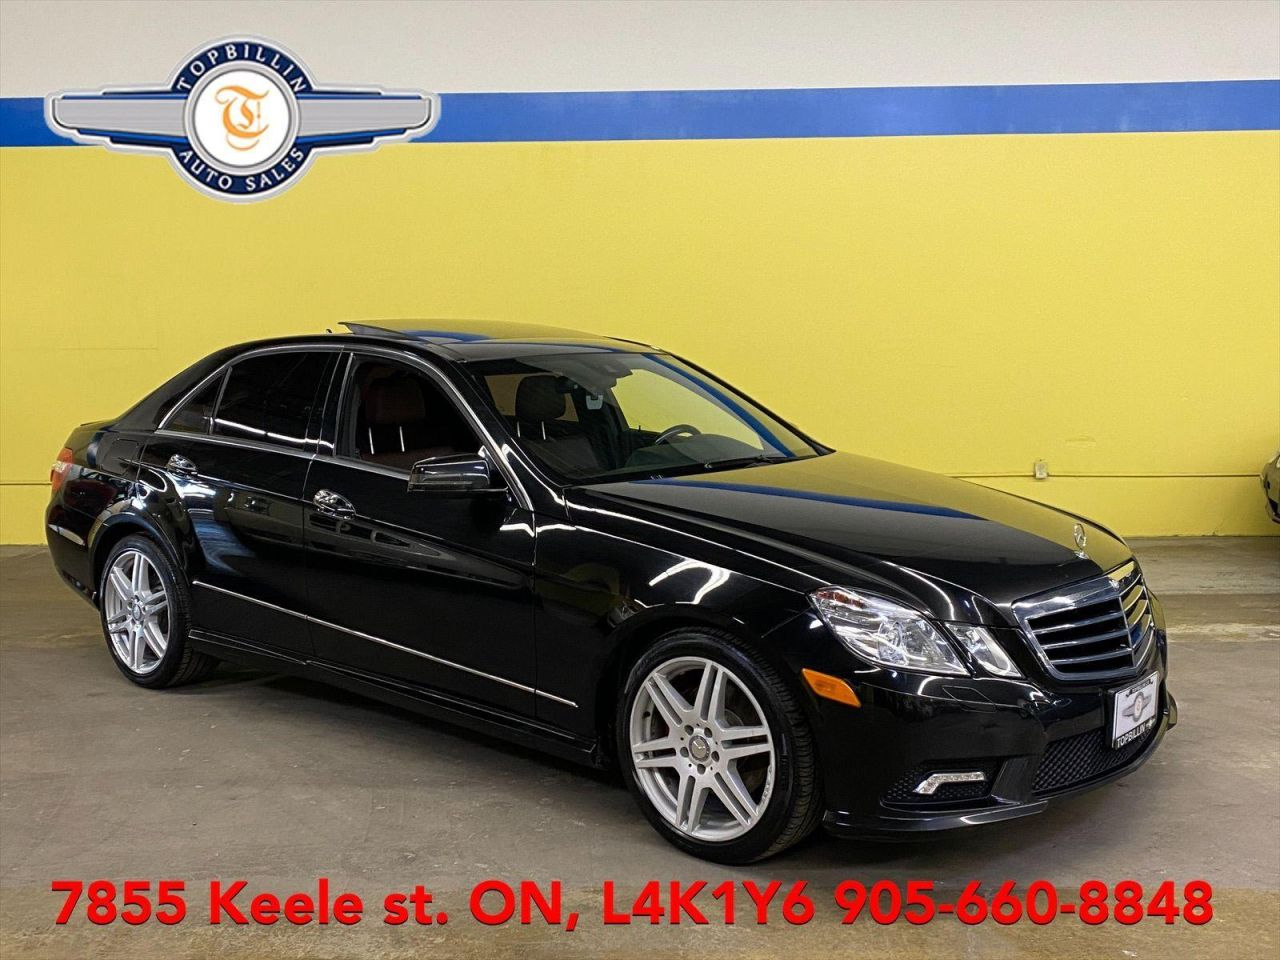 2010 Mercedes-Benz E-Class E 350 4Matic, Fully Loaded, 2 Years Warranty